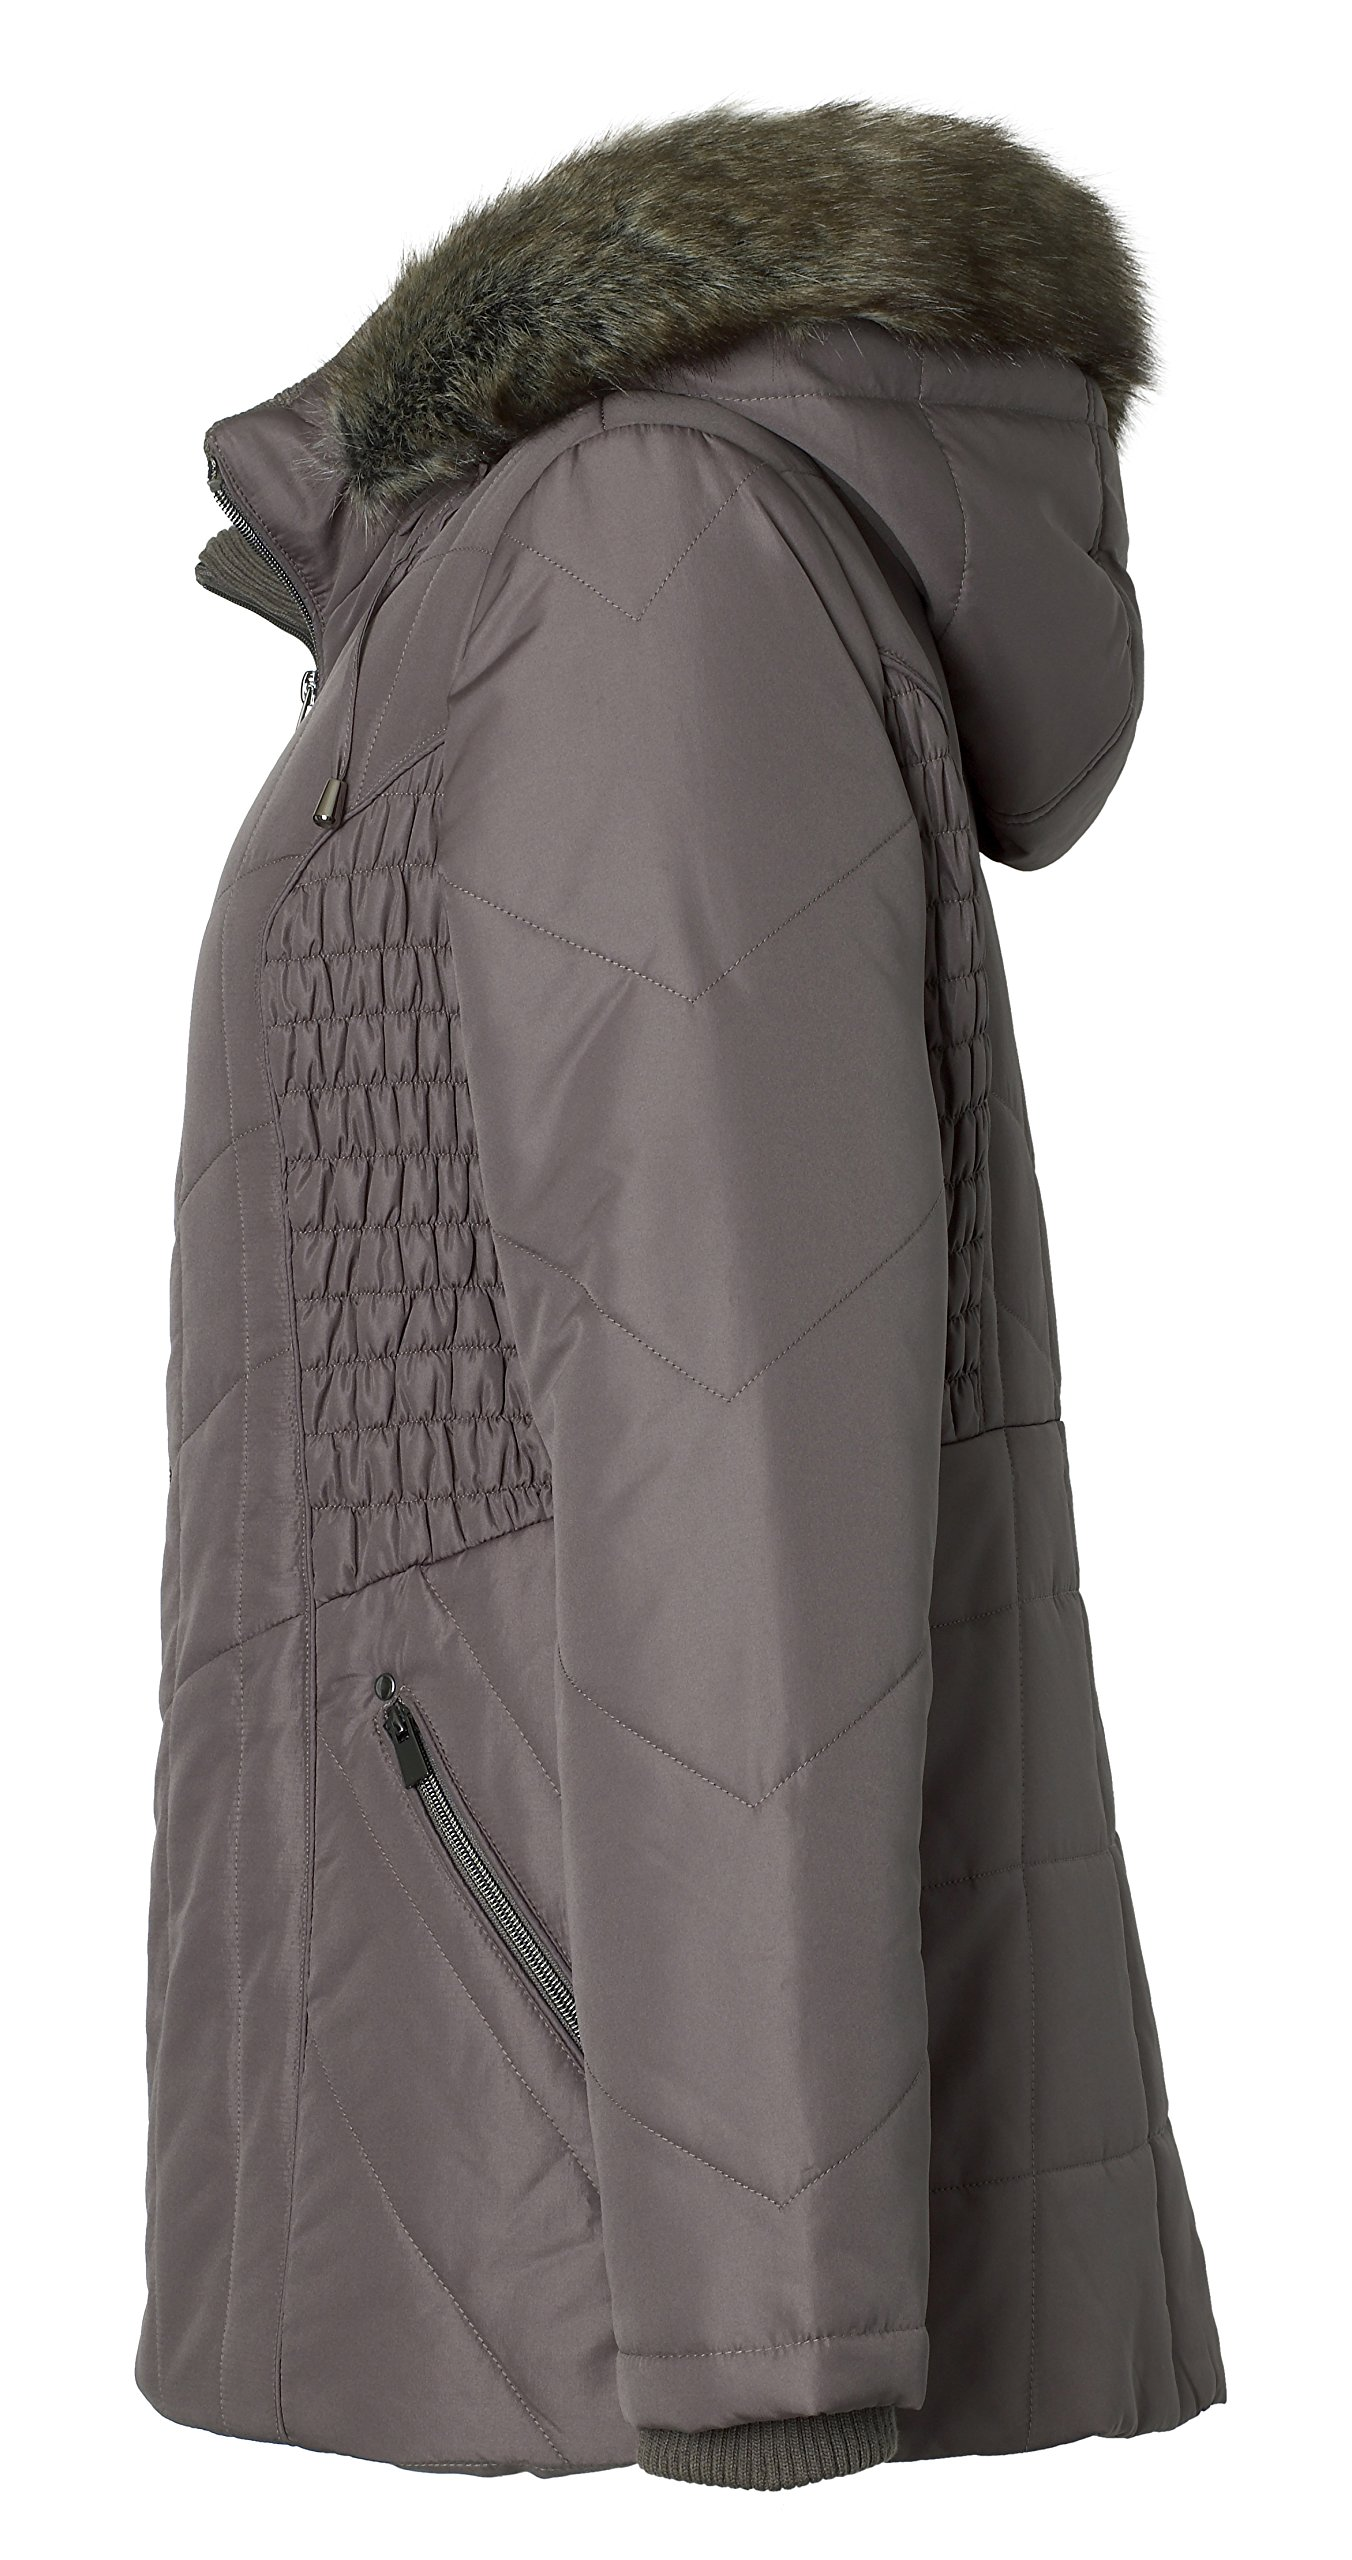 Sportoli Women's Midlength Ruched Detail Plush Lined Puffer Coat with Zip-Off Detacheable Fur Trim Hood - Fog with Polished GunMetal (2X) by Sportoli (Image #5)